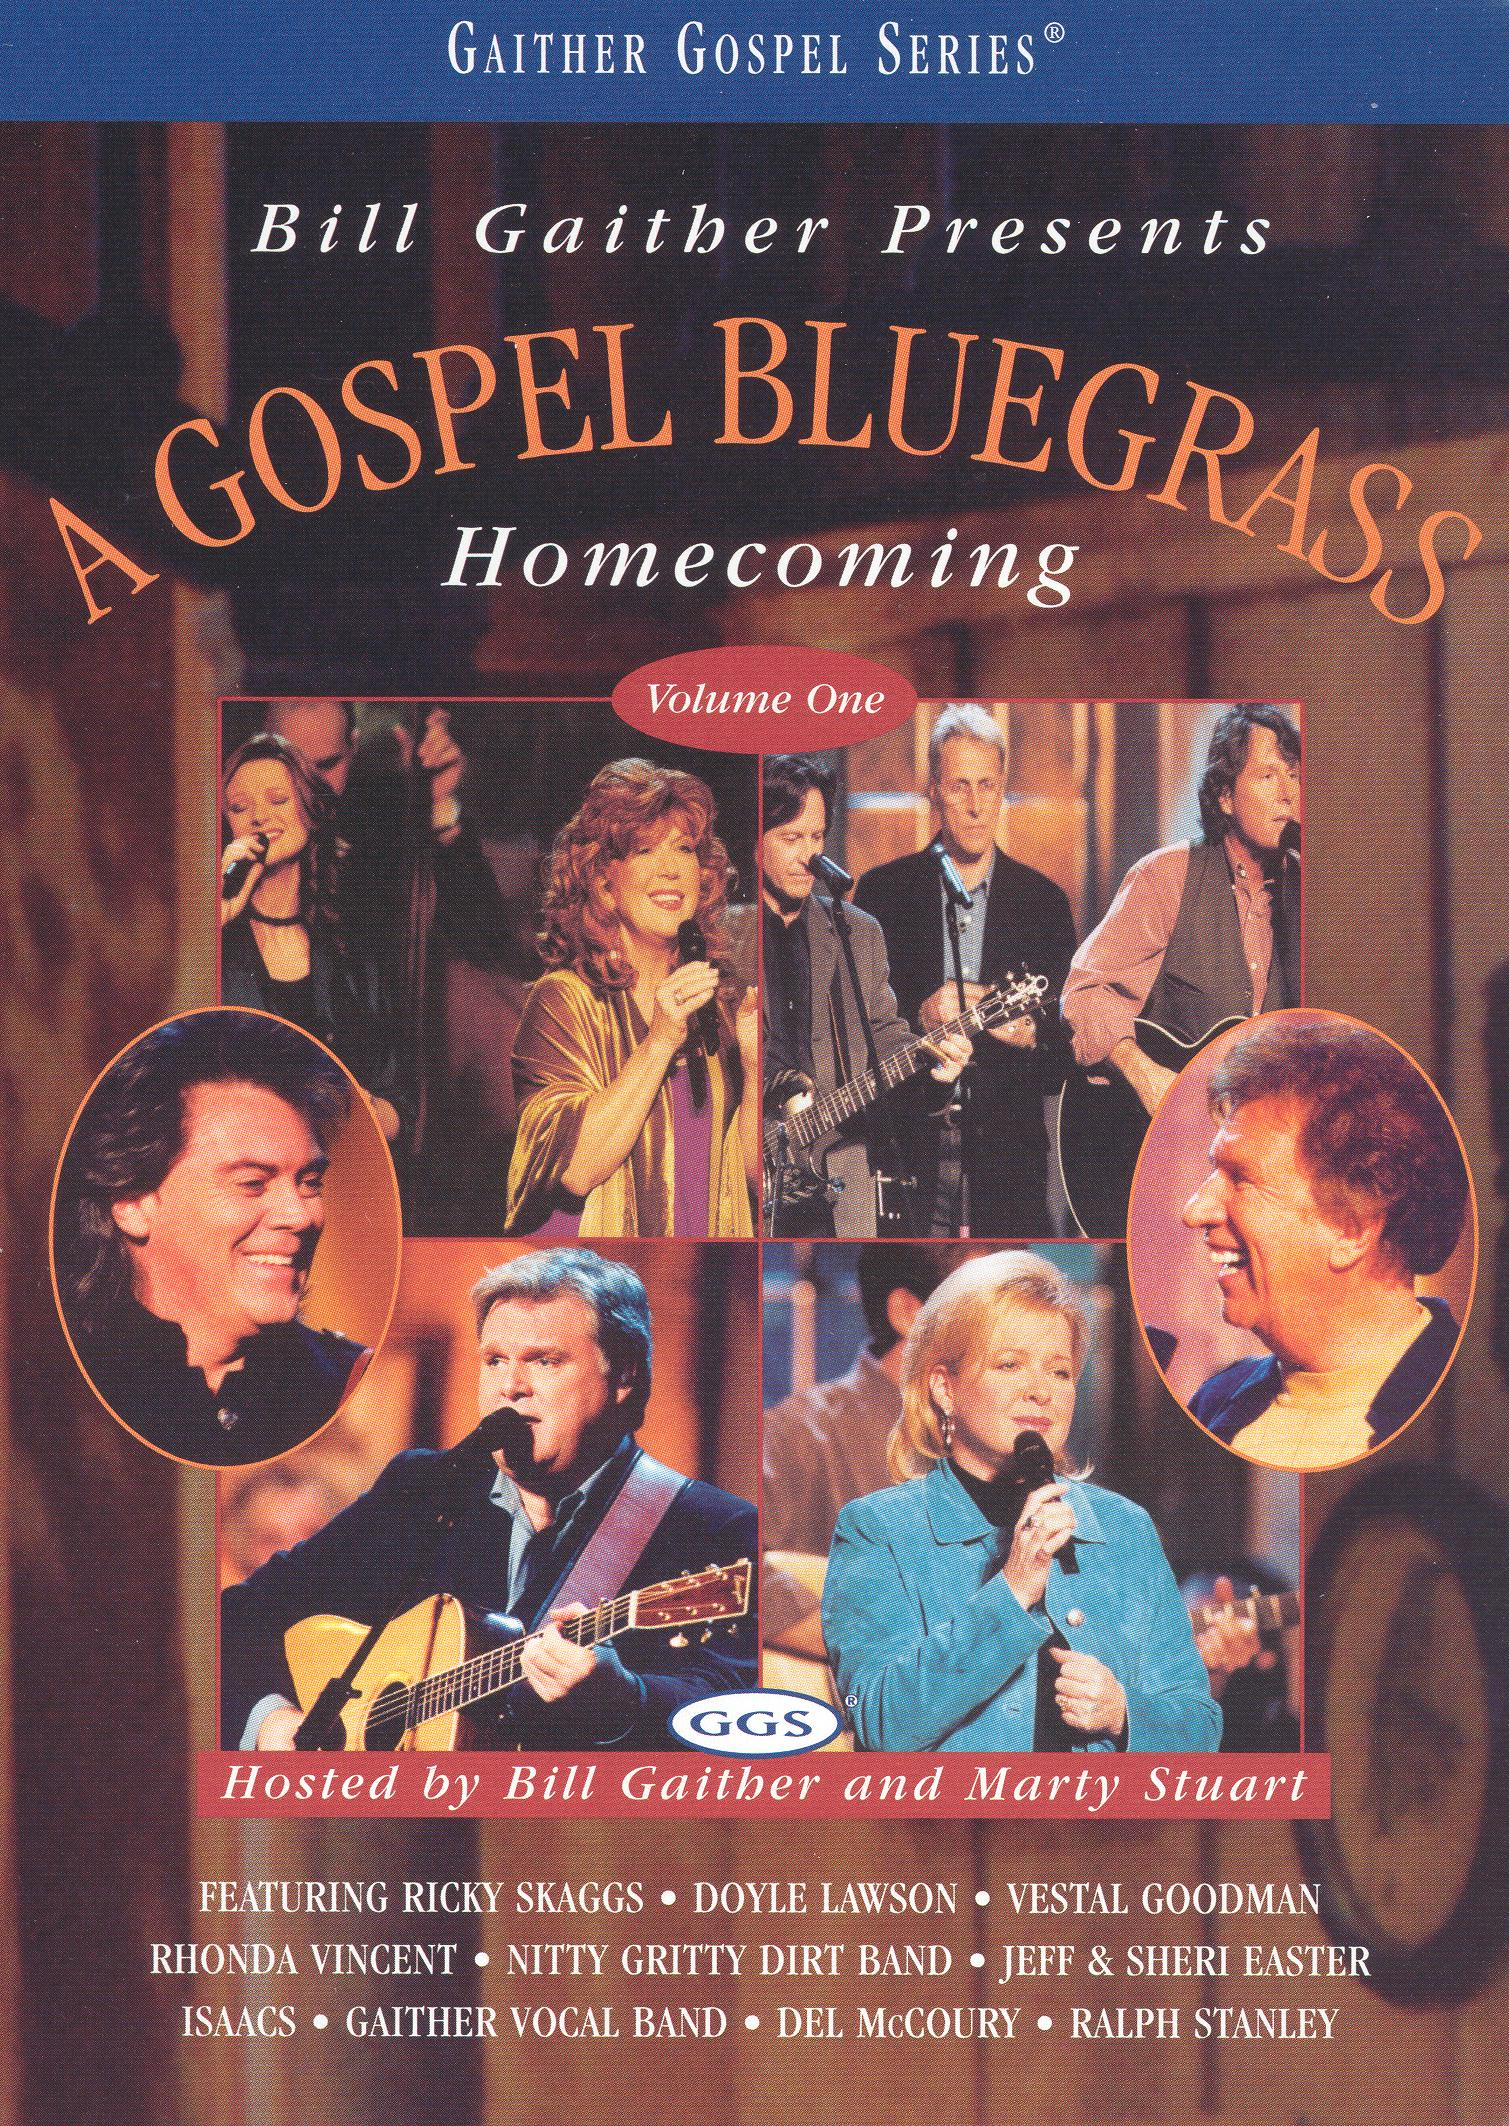 A Gospel Bluegrass Homecoming, Vol. 1